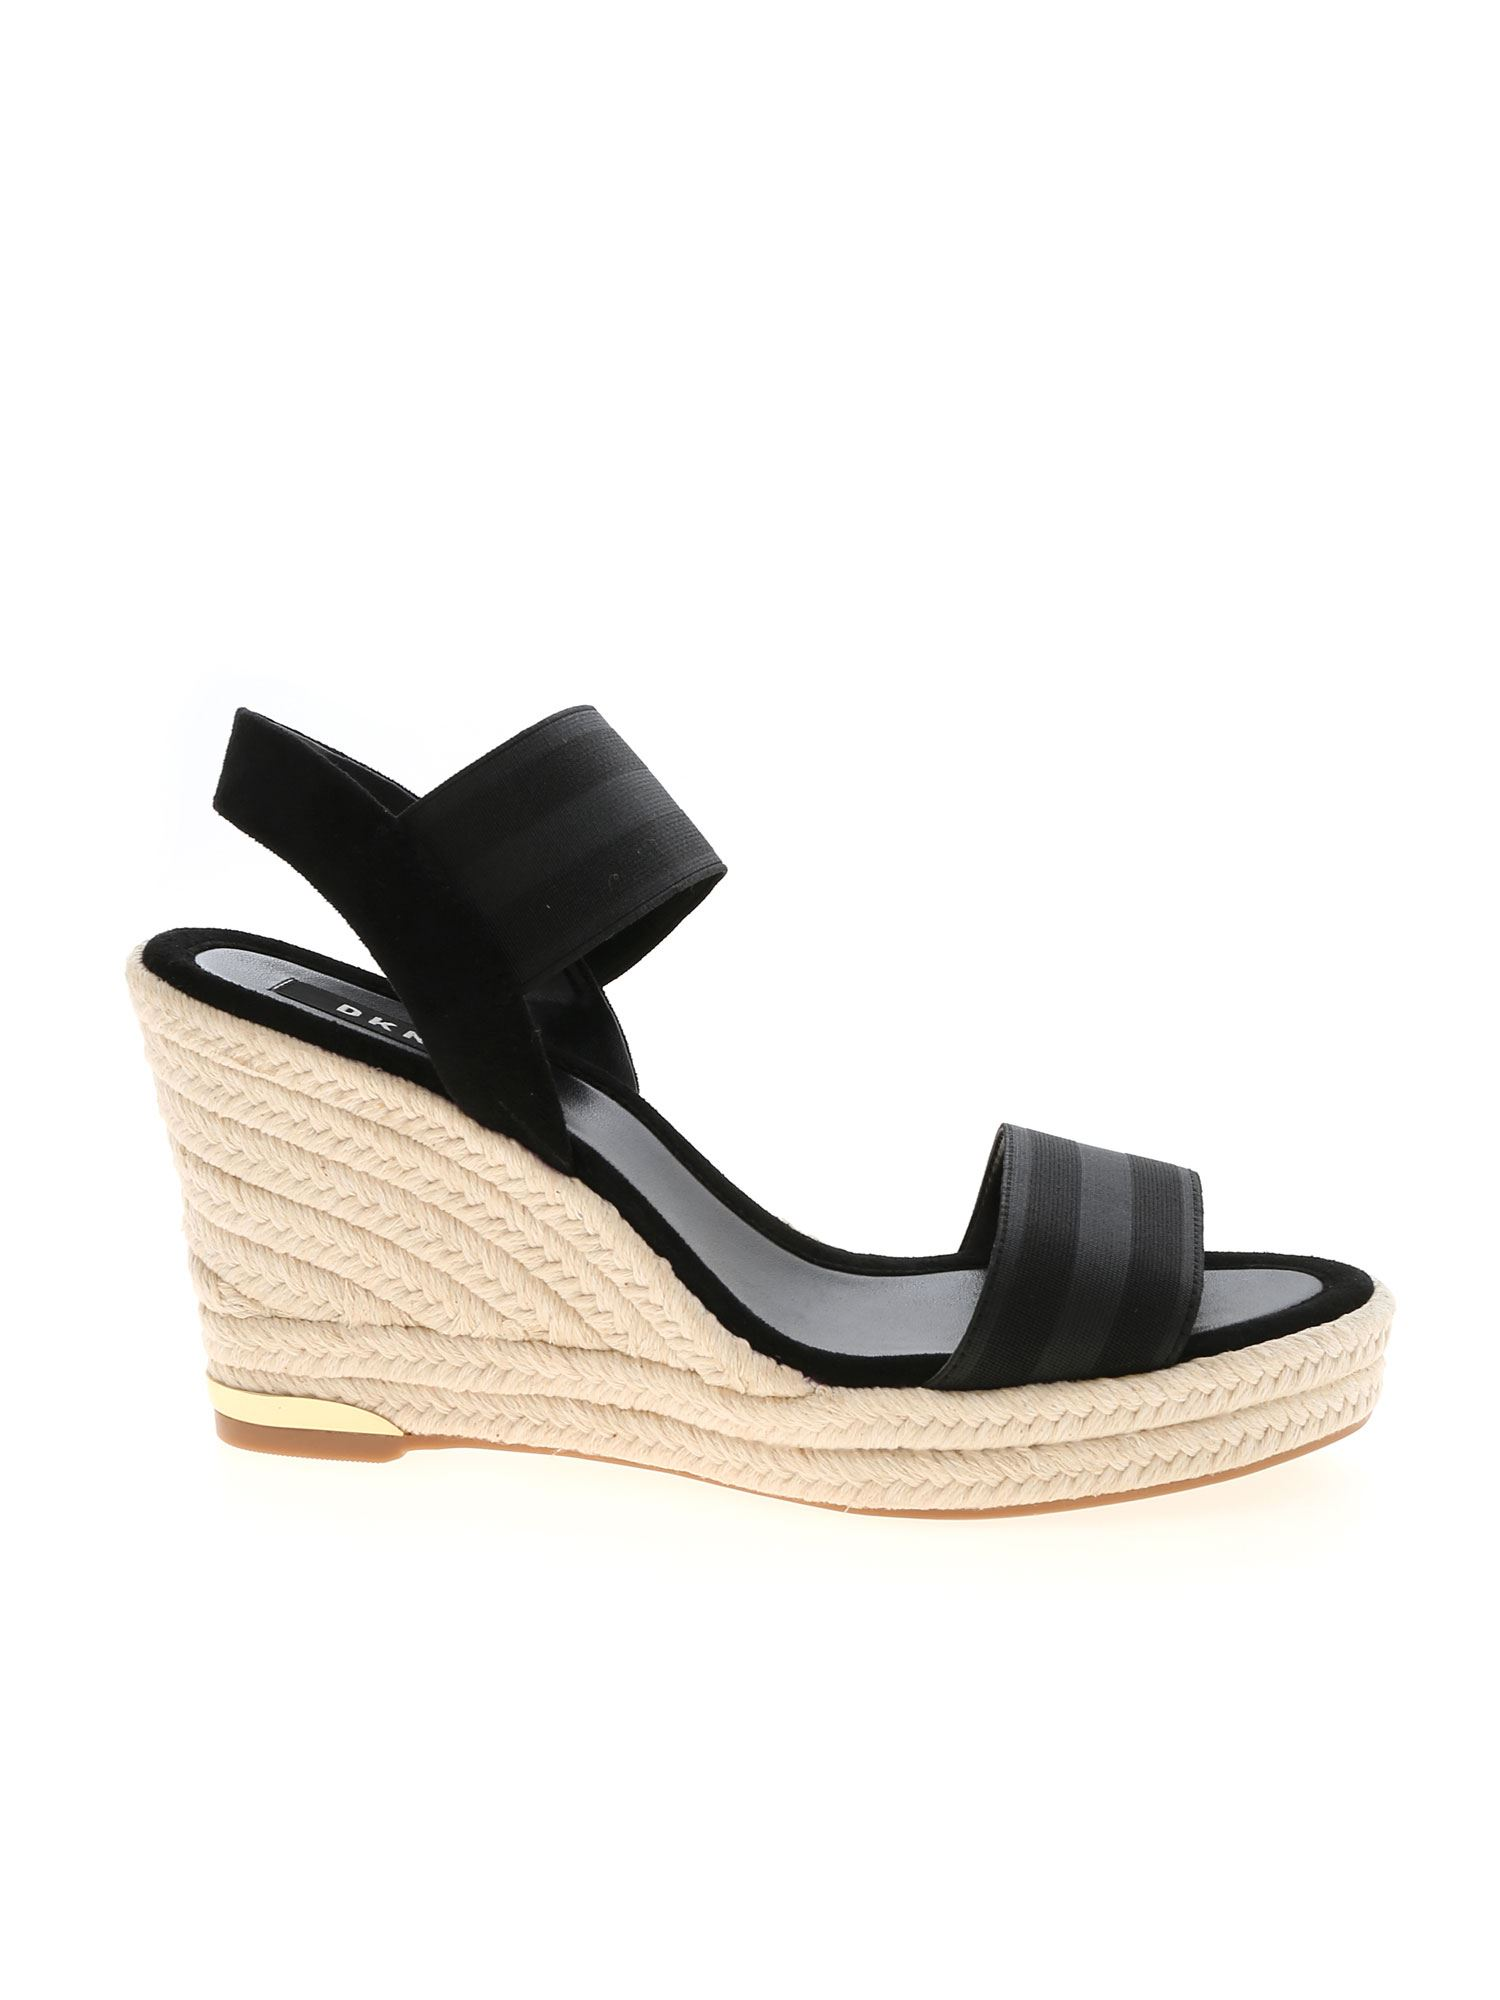 Dkny Suedes CAT SANDALS IN BLACK